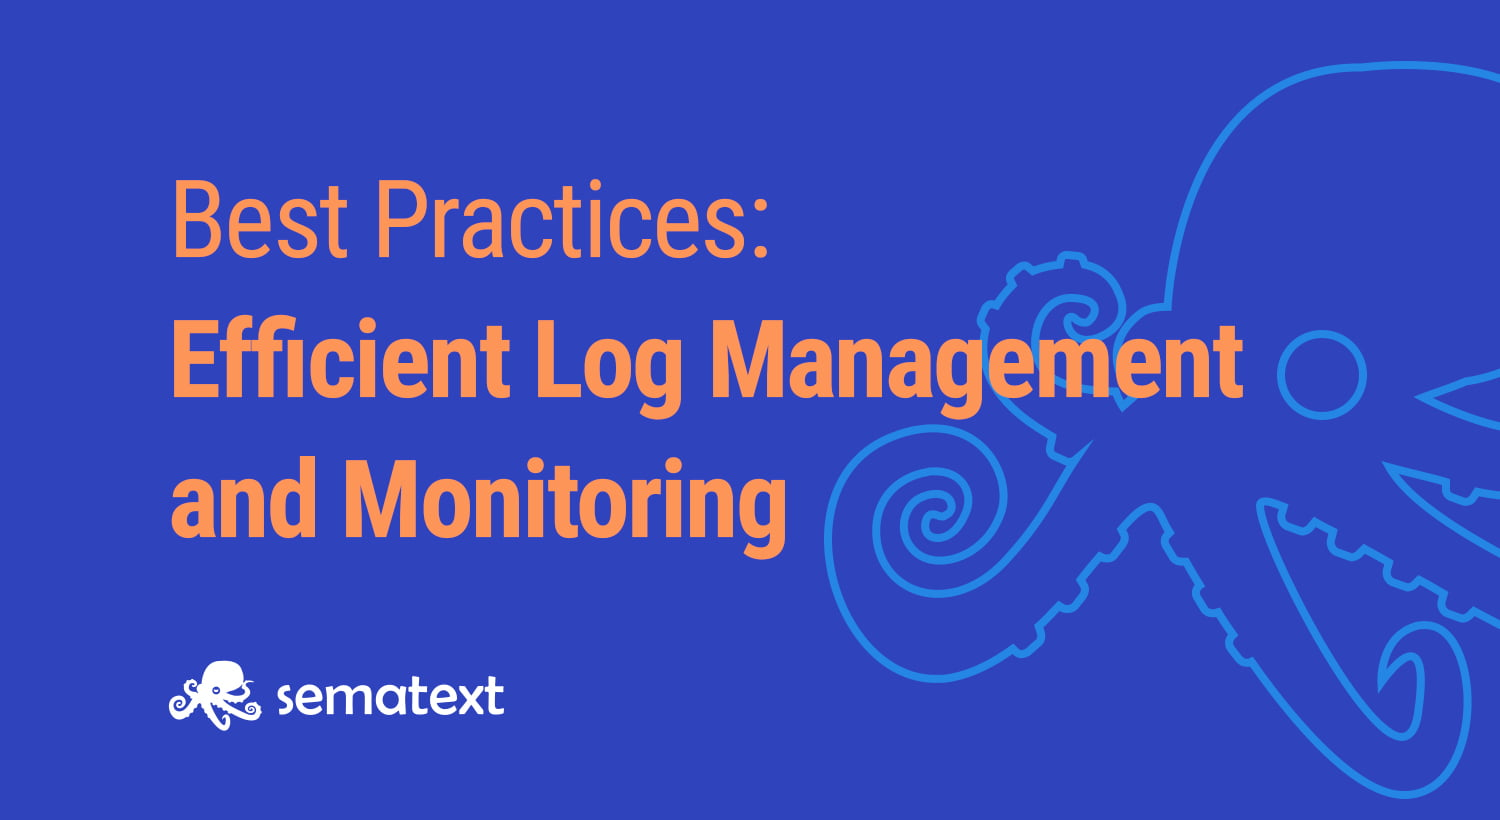 Best Practices for Efficient Log Management and Monitoring